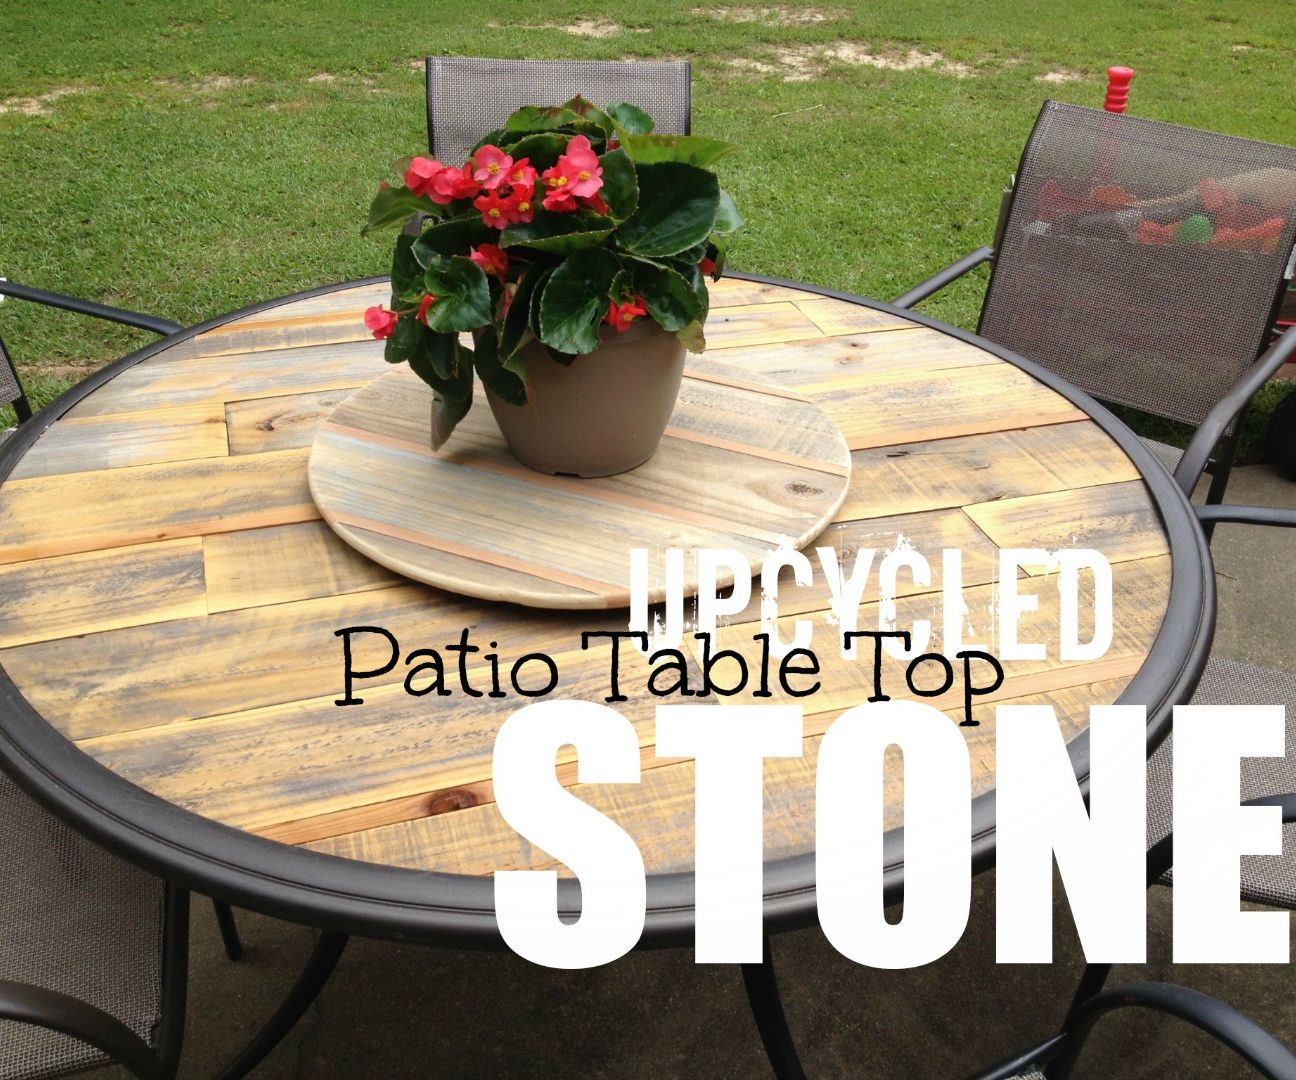 How to Upcycle a Broken Patio Table | Patio table, Upcycle and Patios